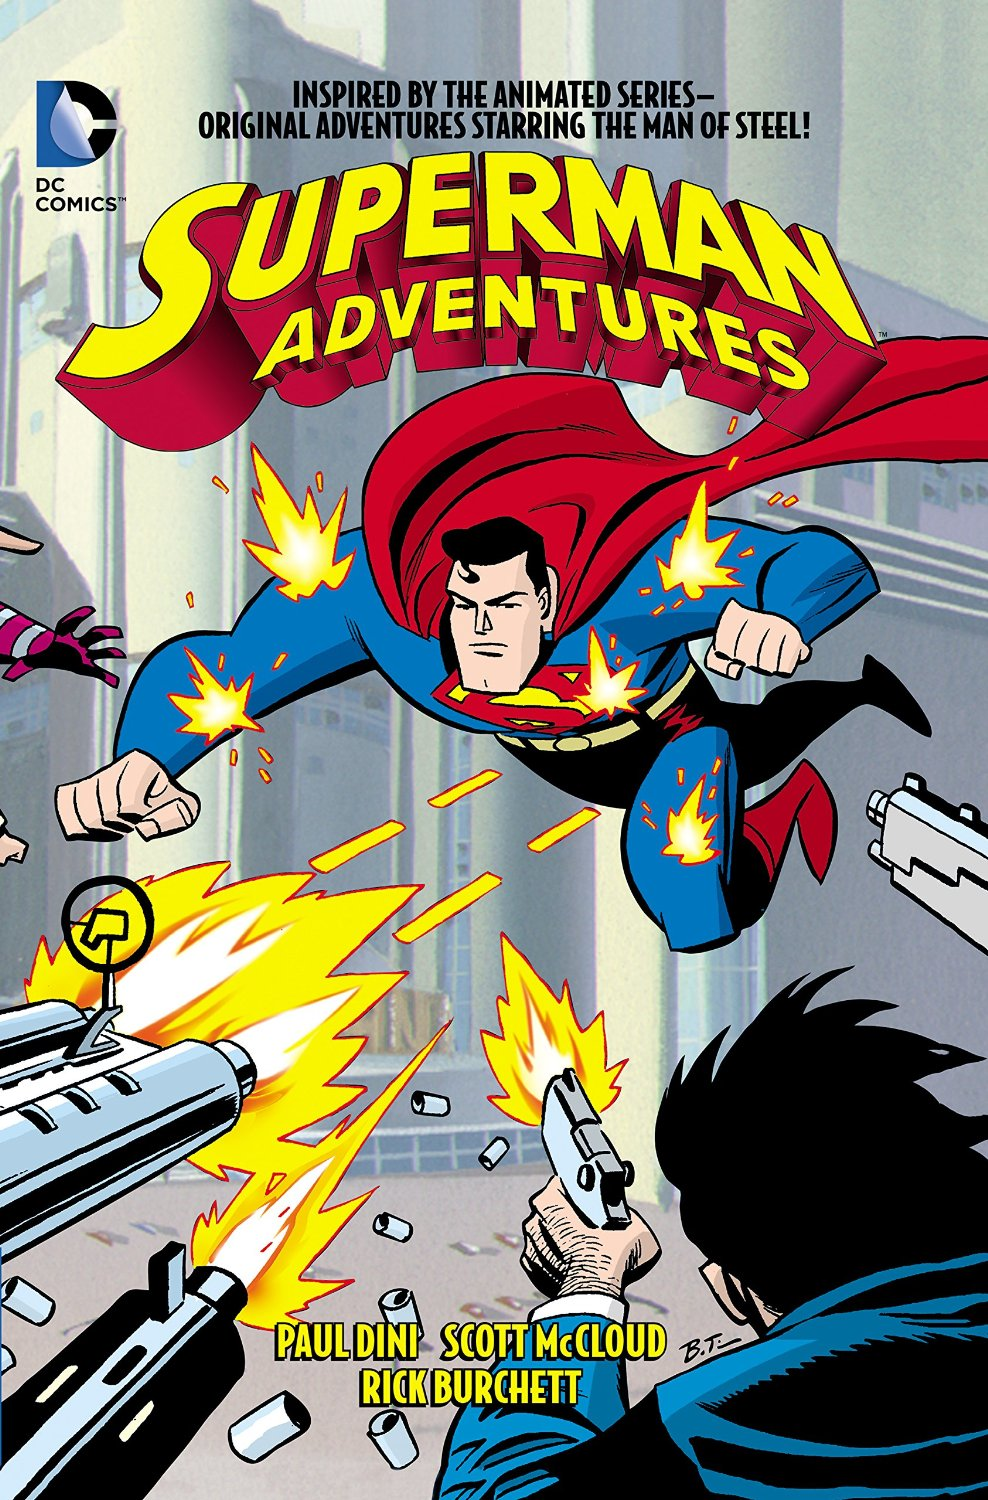 Superman Adventures Vol. 1 (Collected)